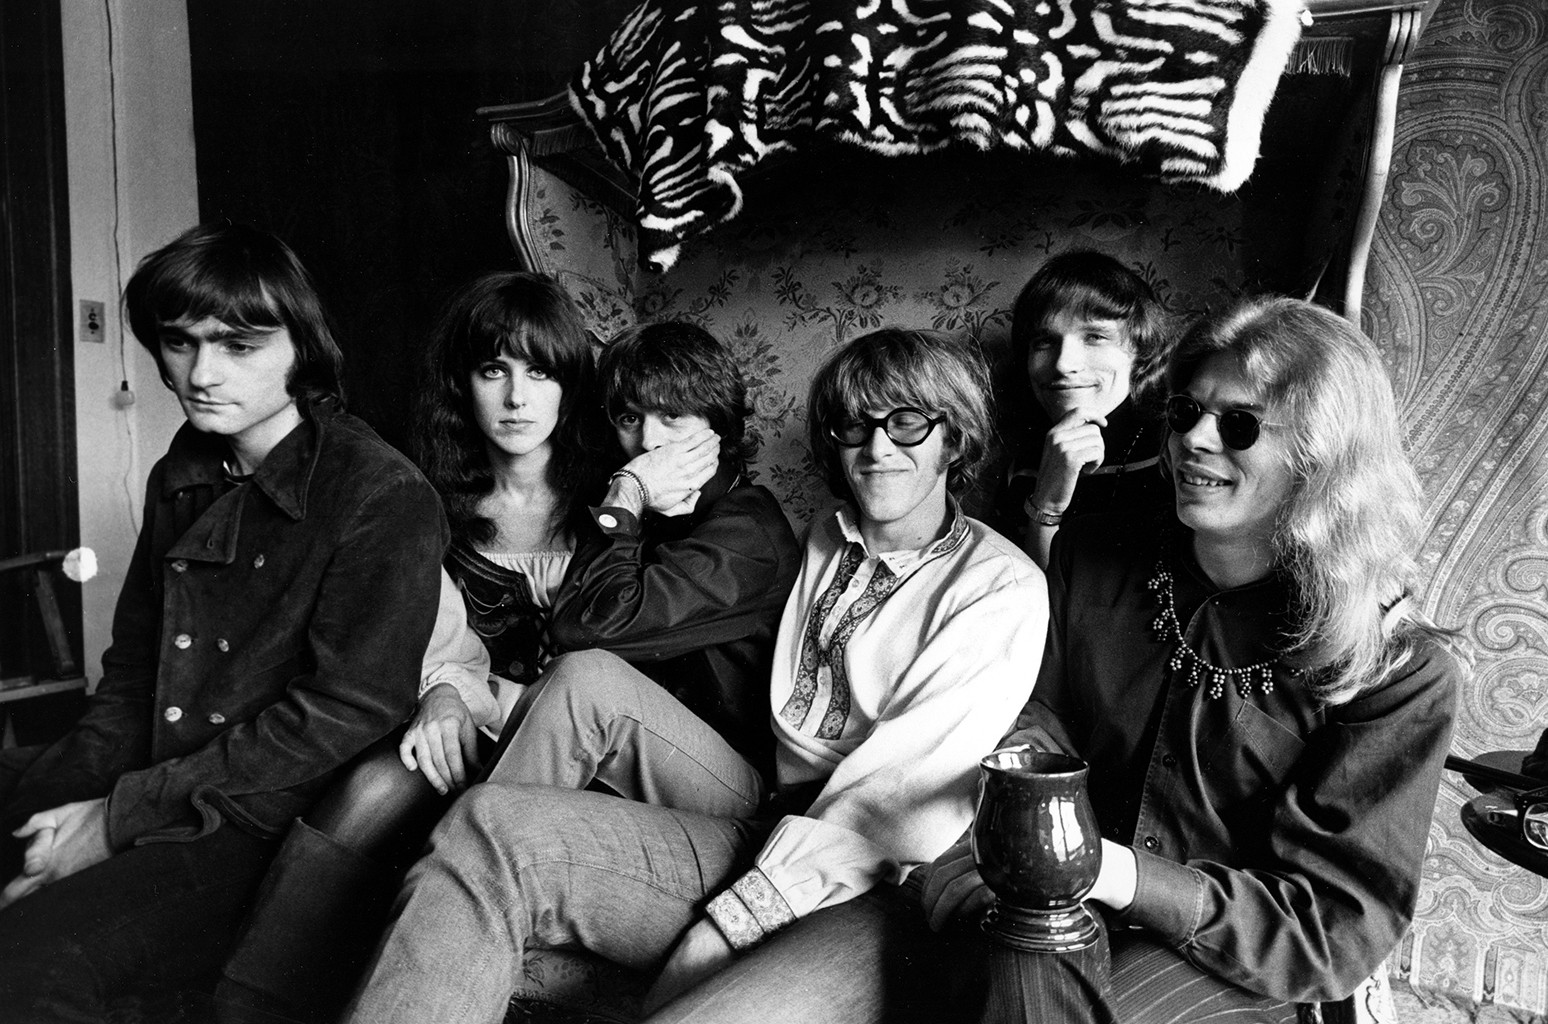 Jefferson Airplane photographed in San Francisco, Calif. on March 8, 1968.